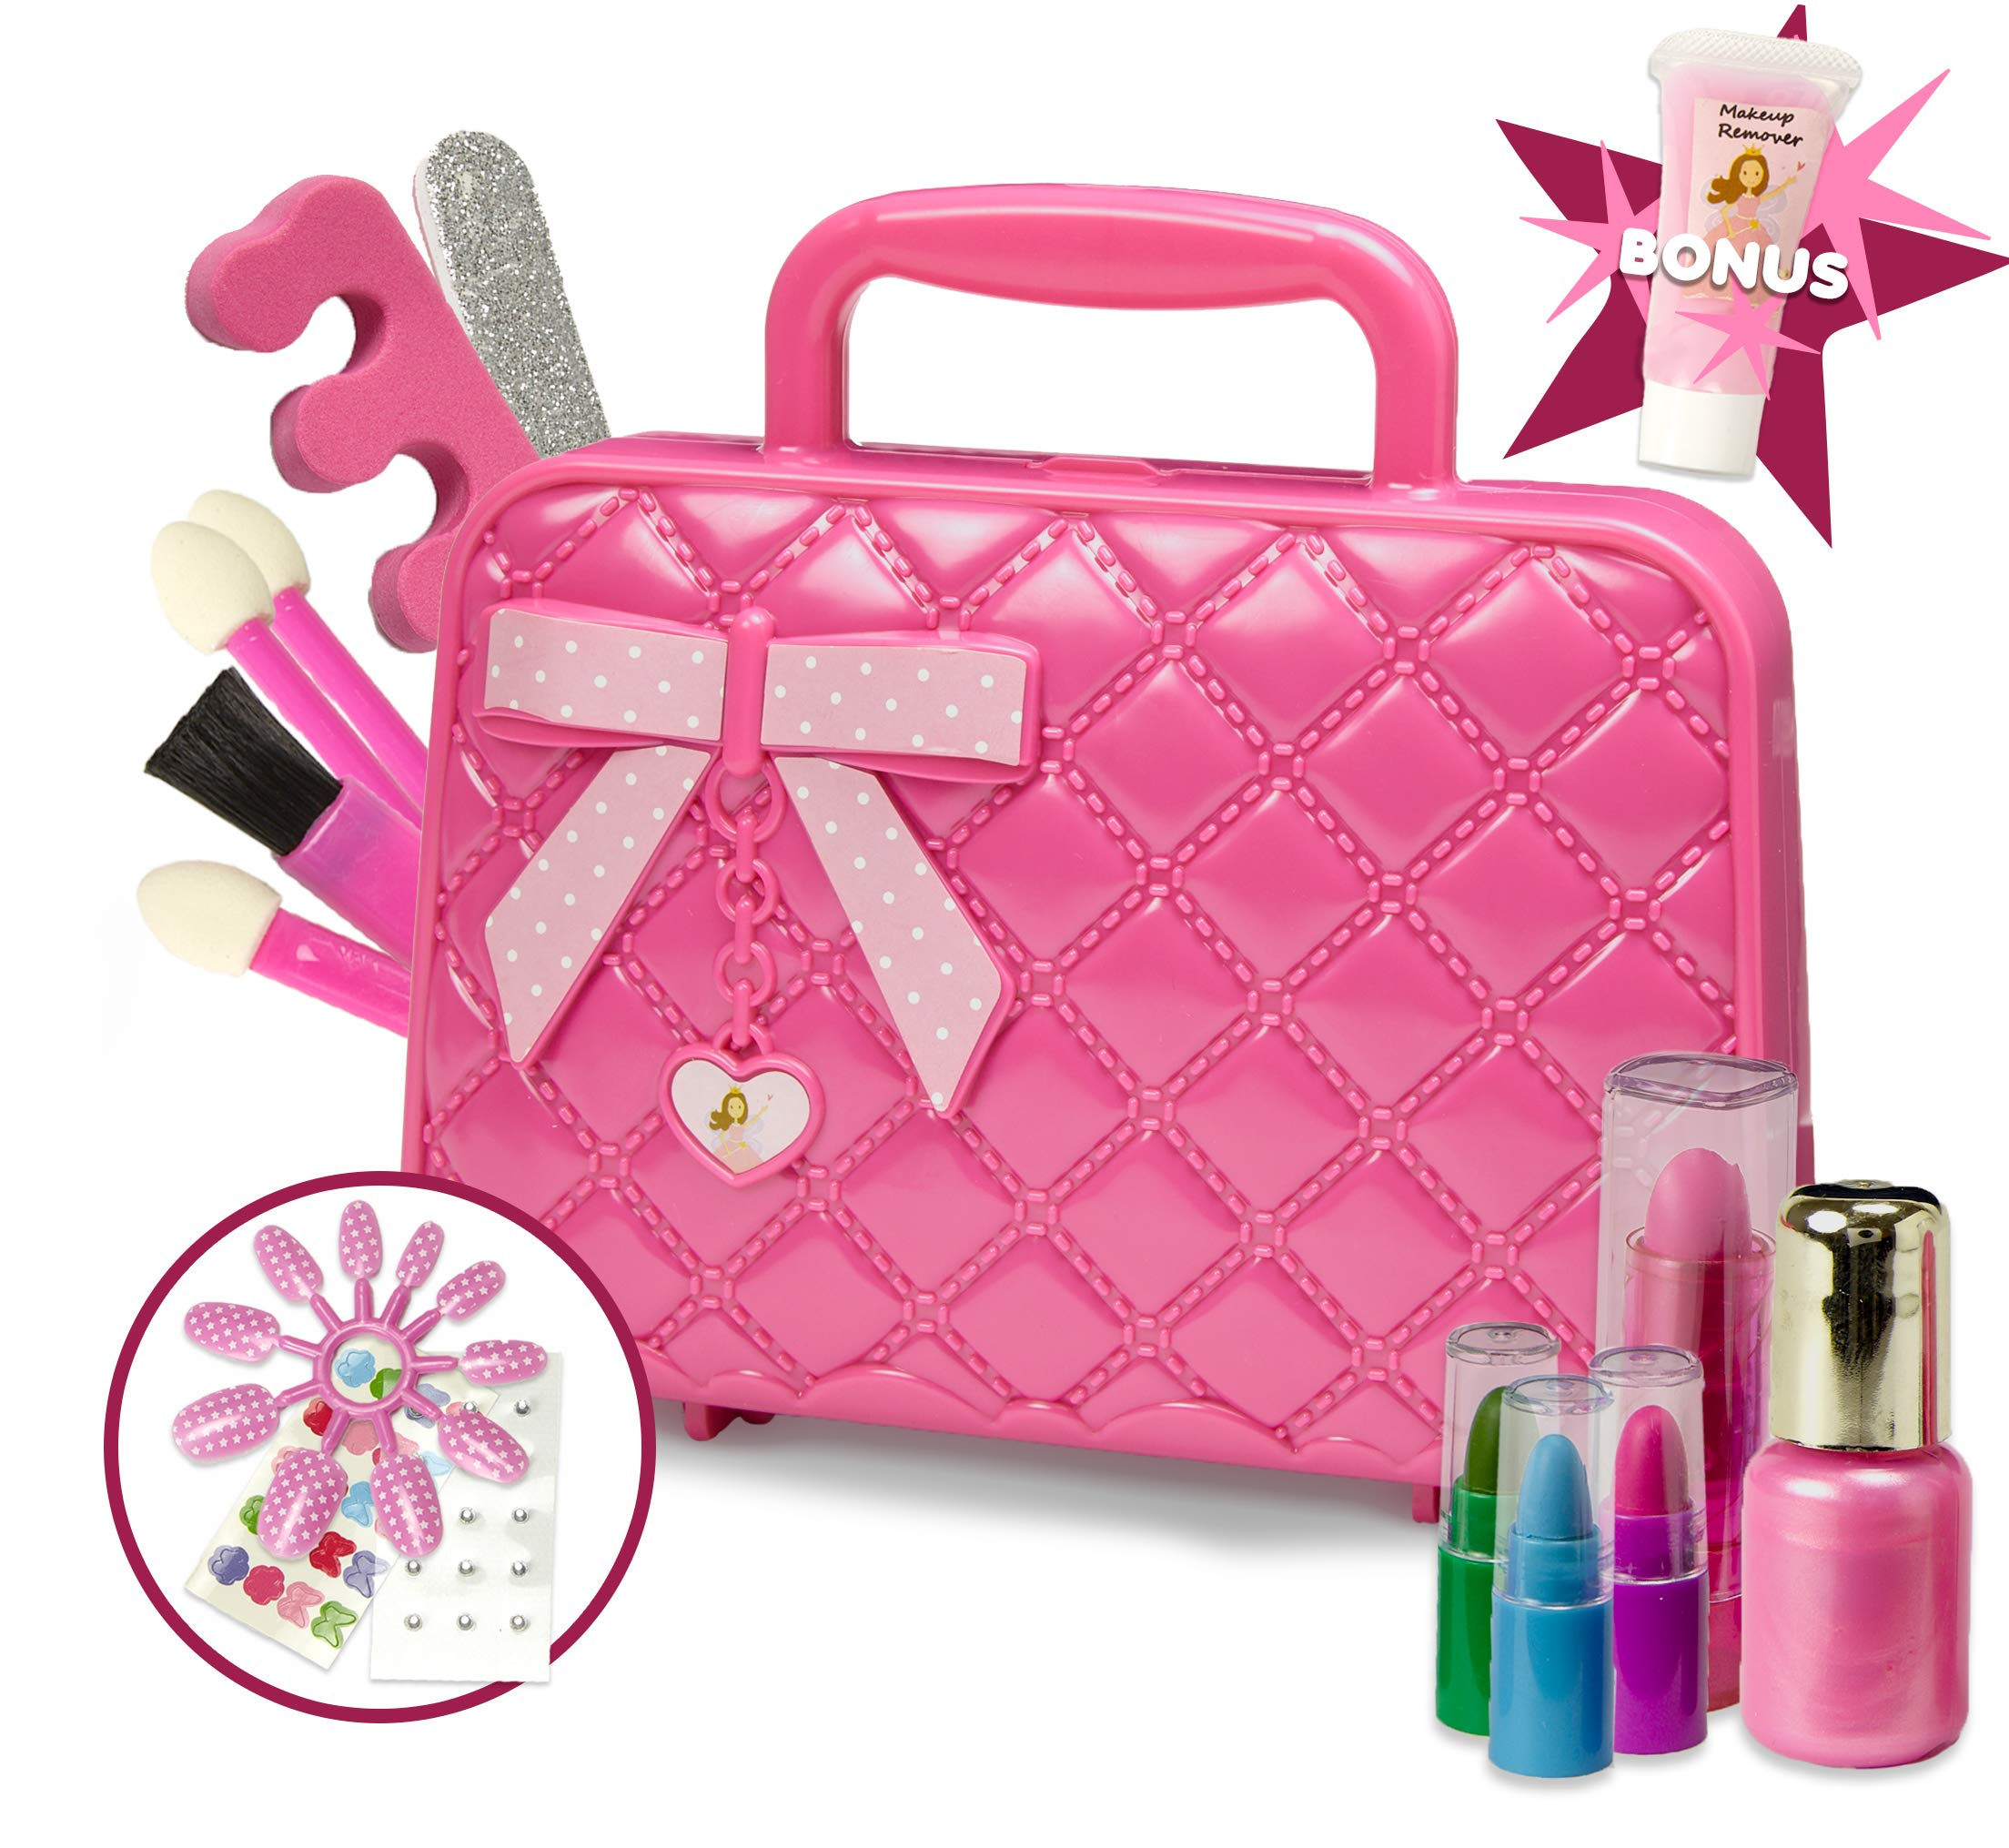 Toysical Kids Makeup Kit for Girl with Make Up Remover - 30Pc Real Washable, Non Toxic Play Princess Cosmetic Set - Ideal Birthday and Christmas Gift for Little Girls Ages 3, 4, 5, 6 Year Old Children by Toysical